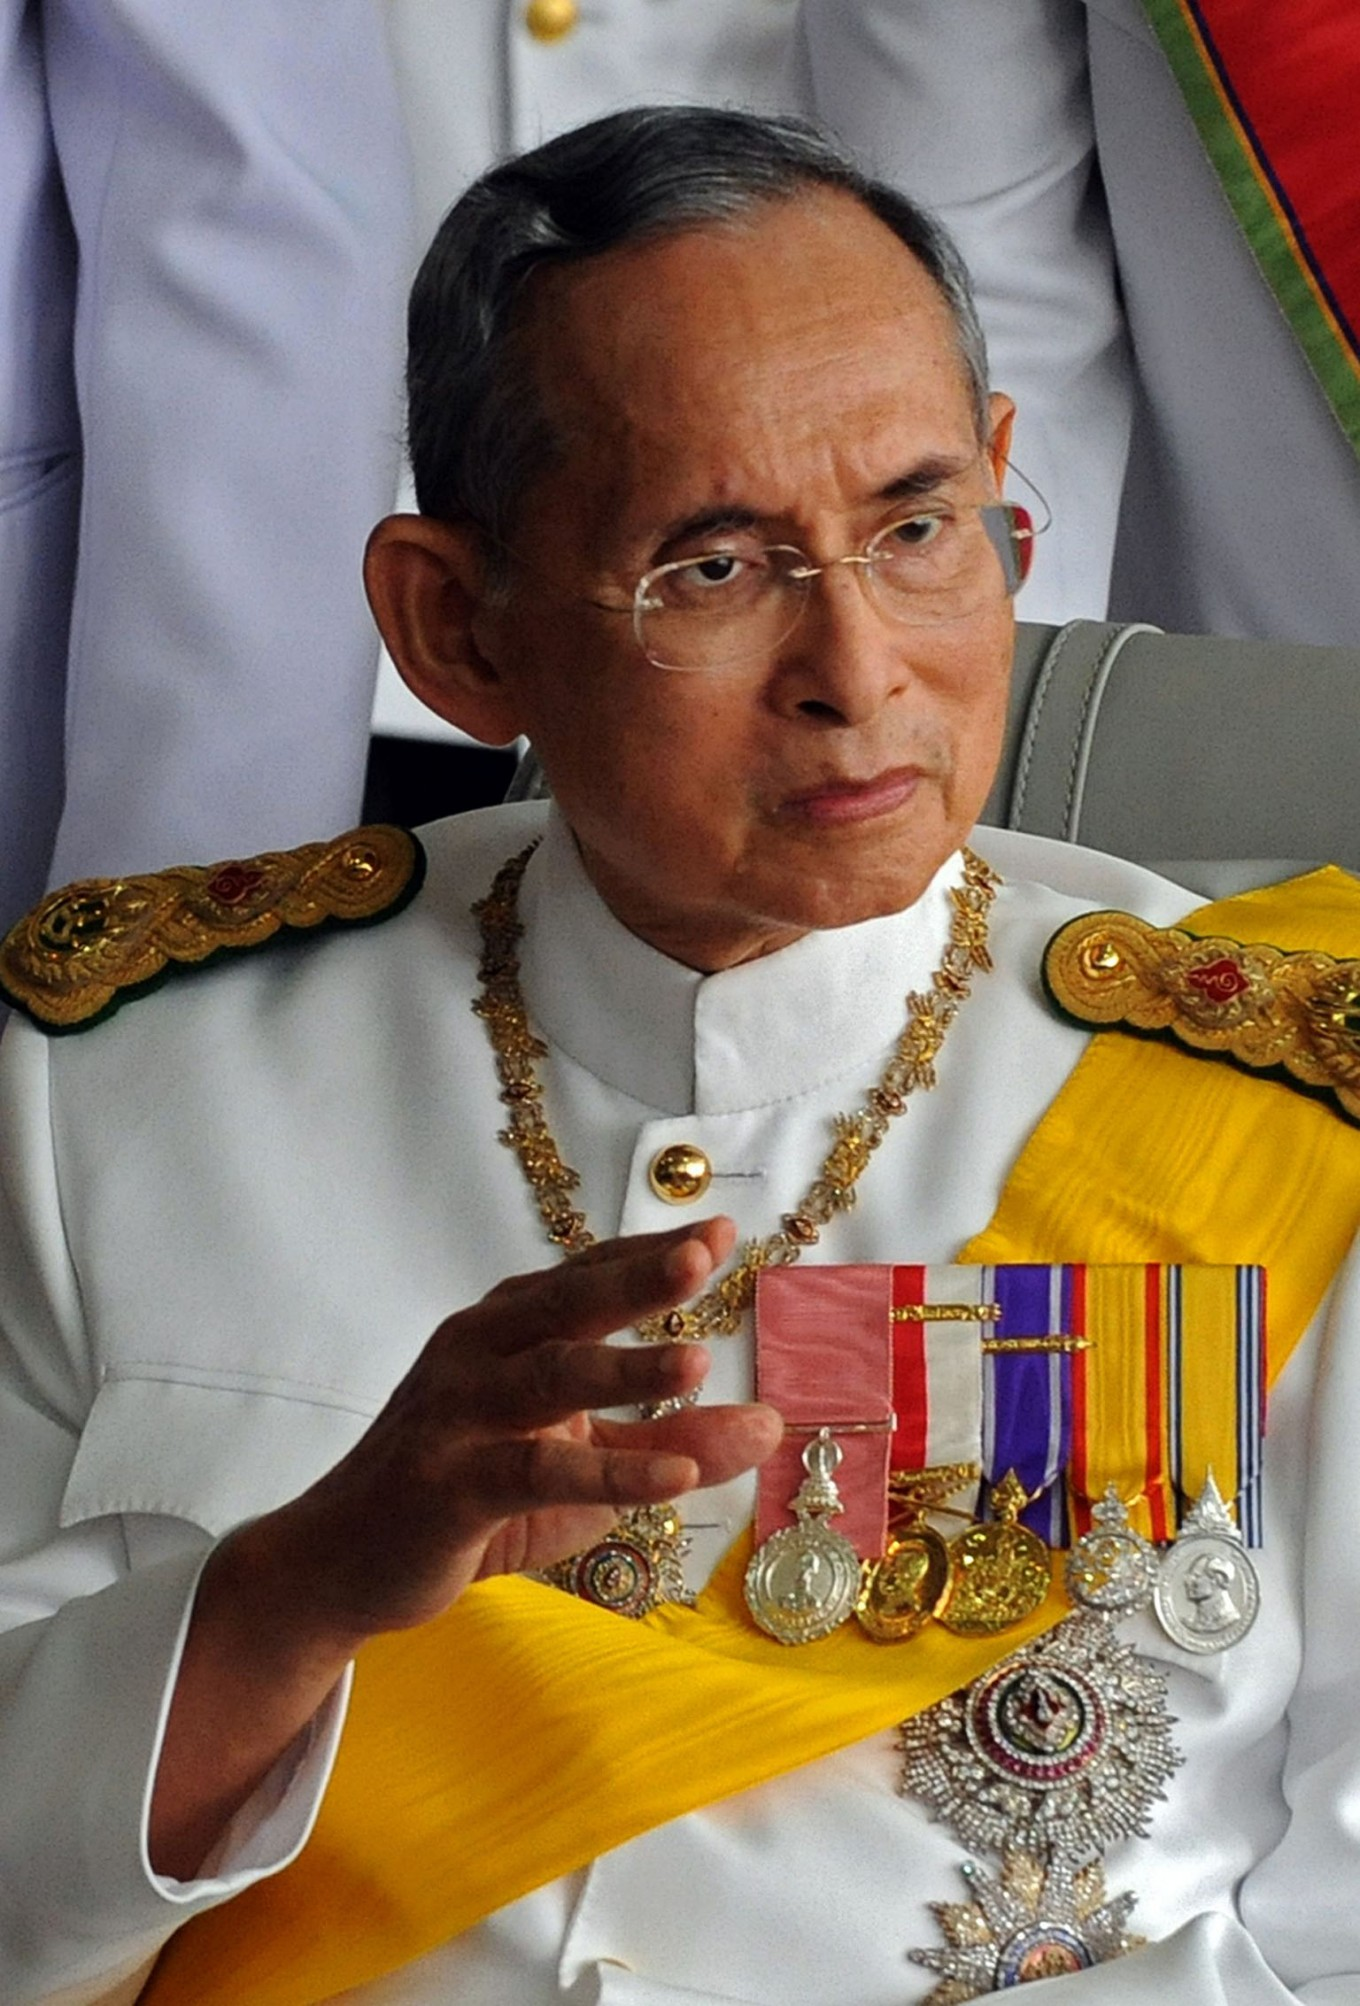 Late King lives in Thai hearts